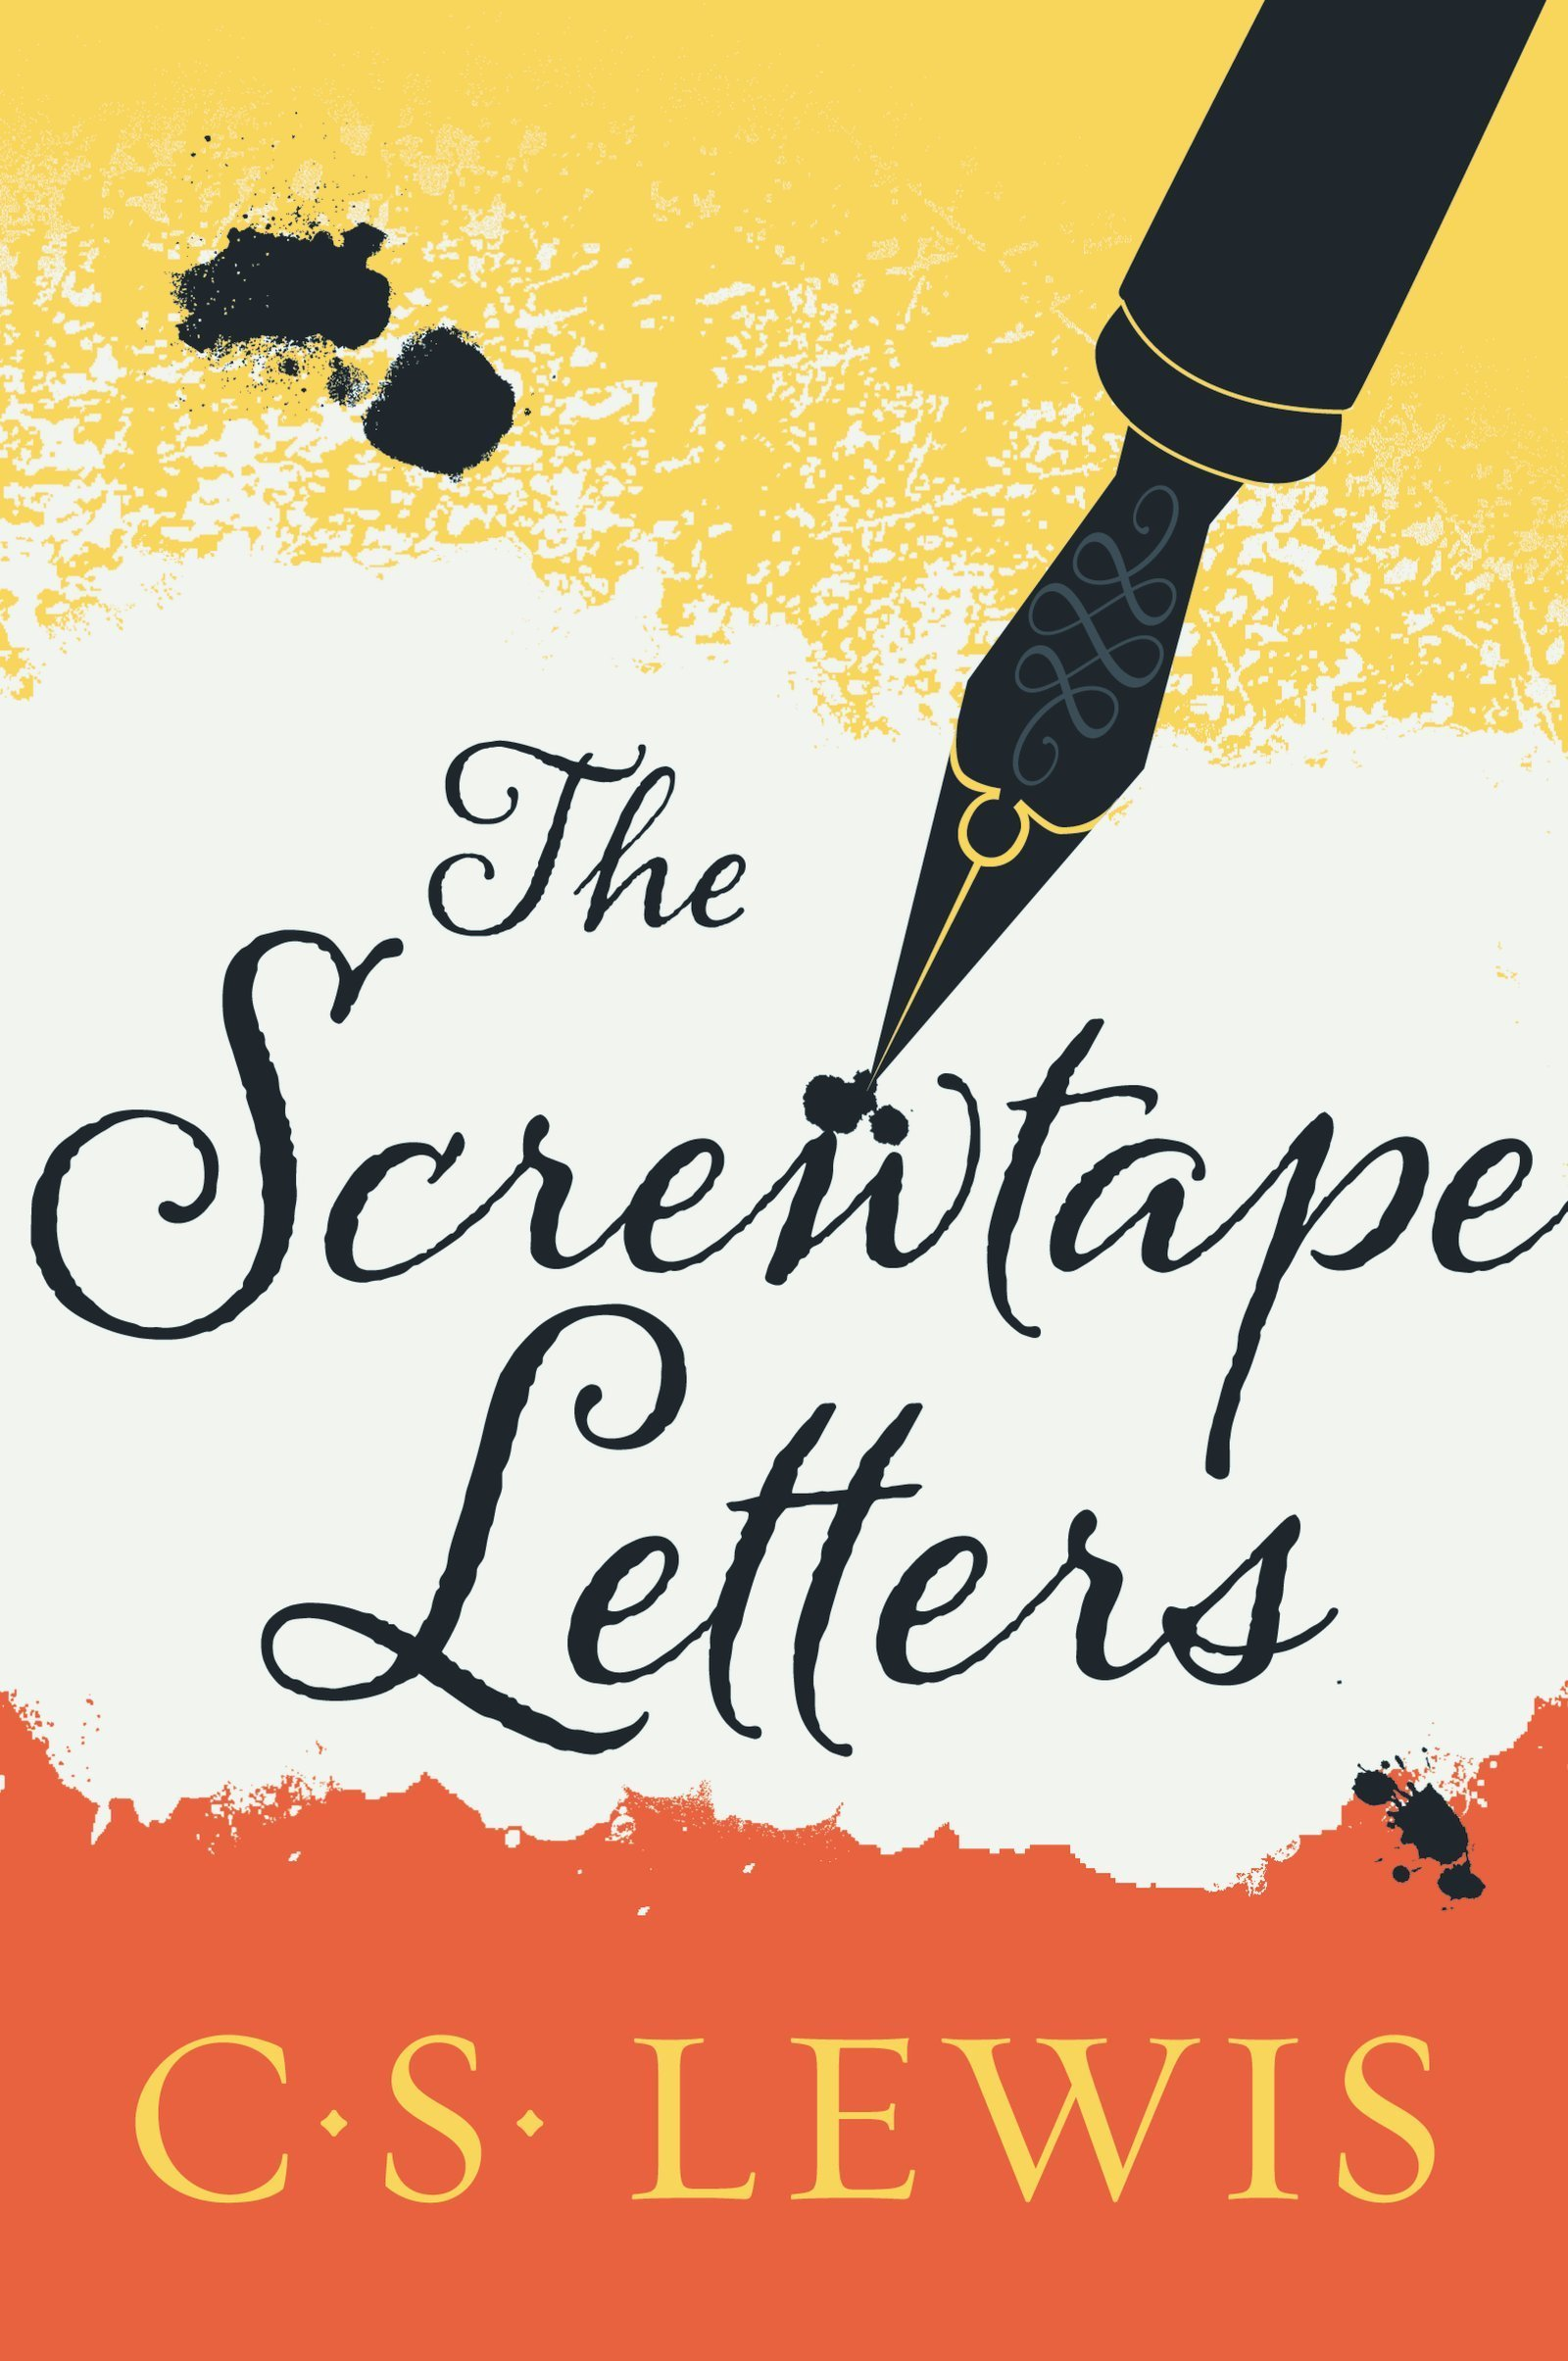 """The Screwtape Letters    The Screwtape Letters by C.S. Lewis is a classic masterpiece of religious satire that entertains readers with its sly and ironic portrayal of human life and foibles from the vantage point of Screwtape, a highly placed assistant to """"Our Father Below."""""""